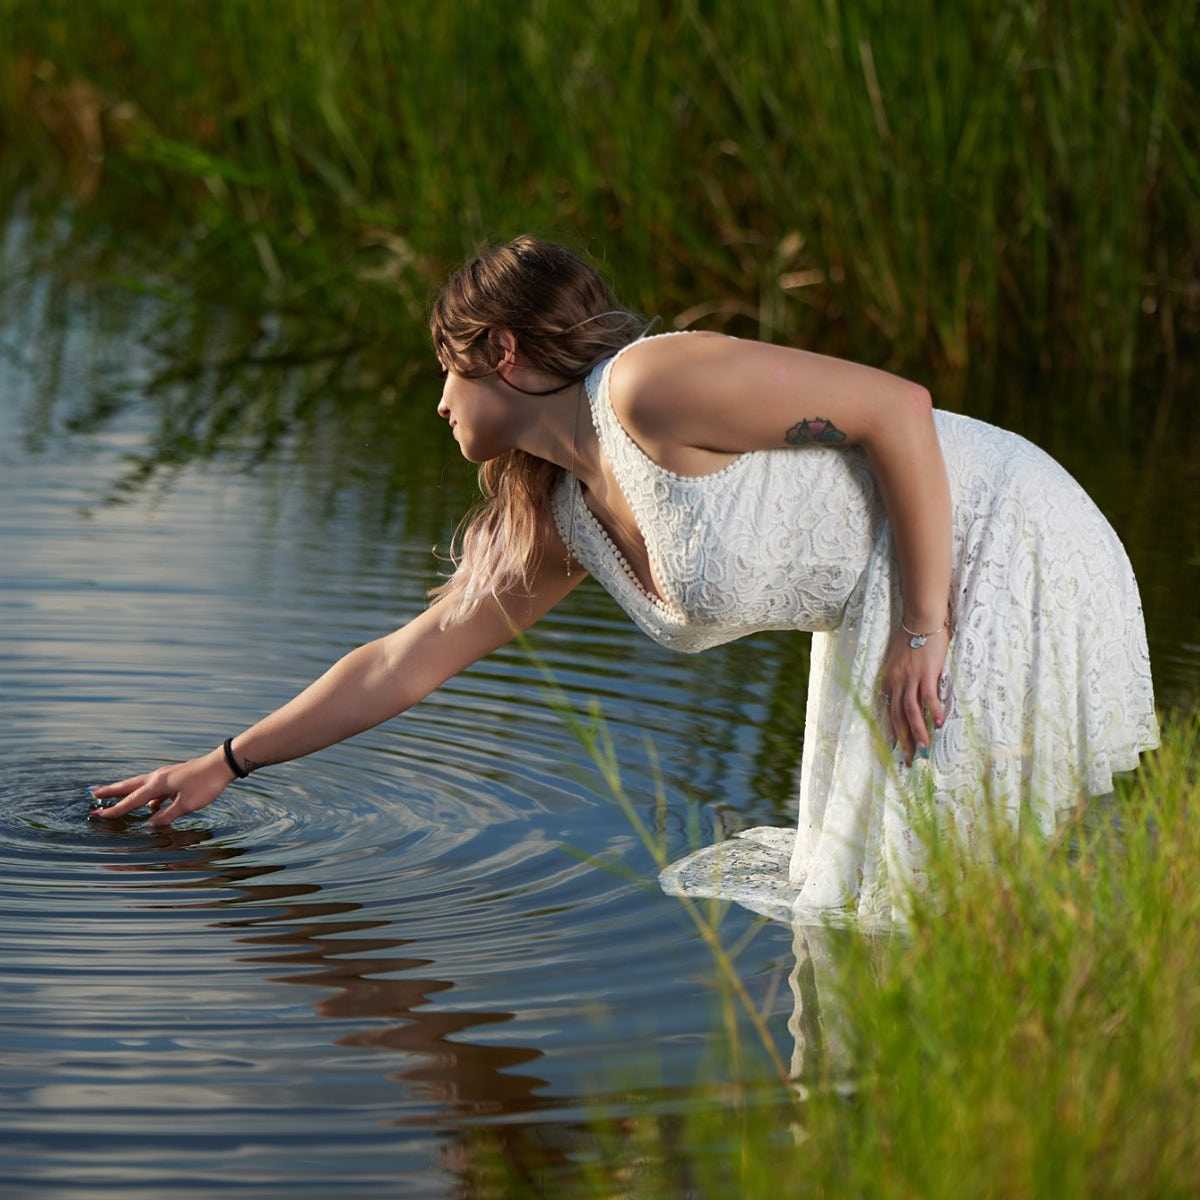 Girl touching the surface of a pond